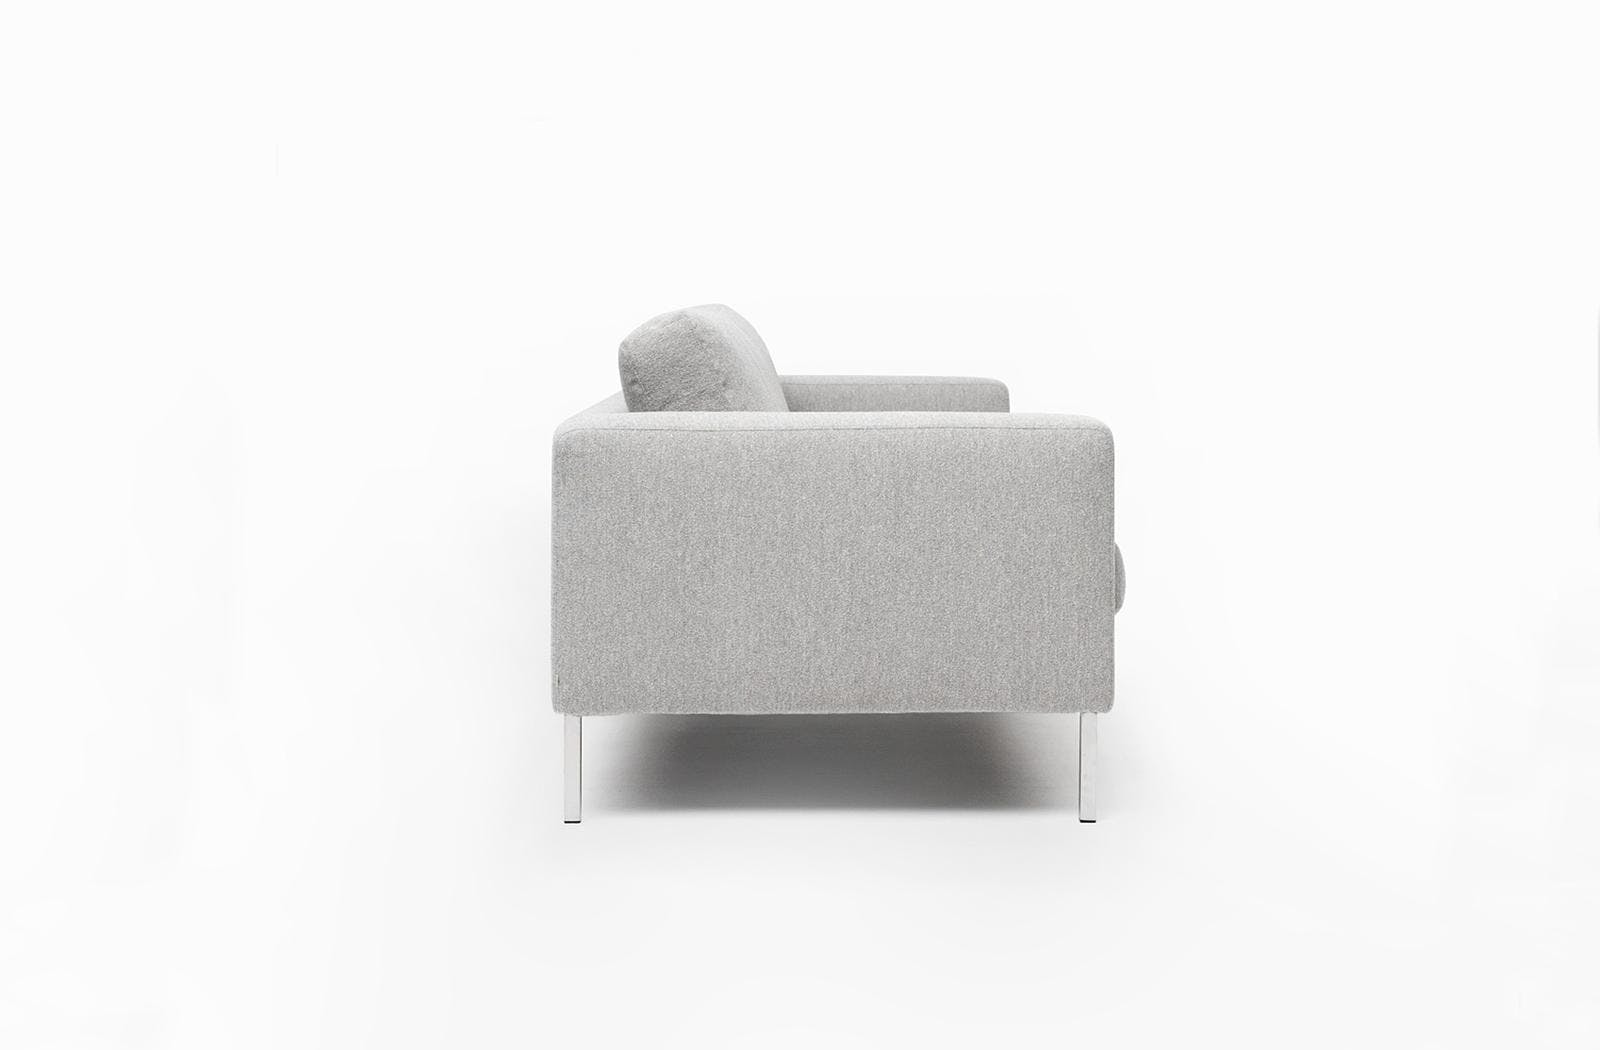 Bensen Neo Sofa Side